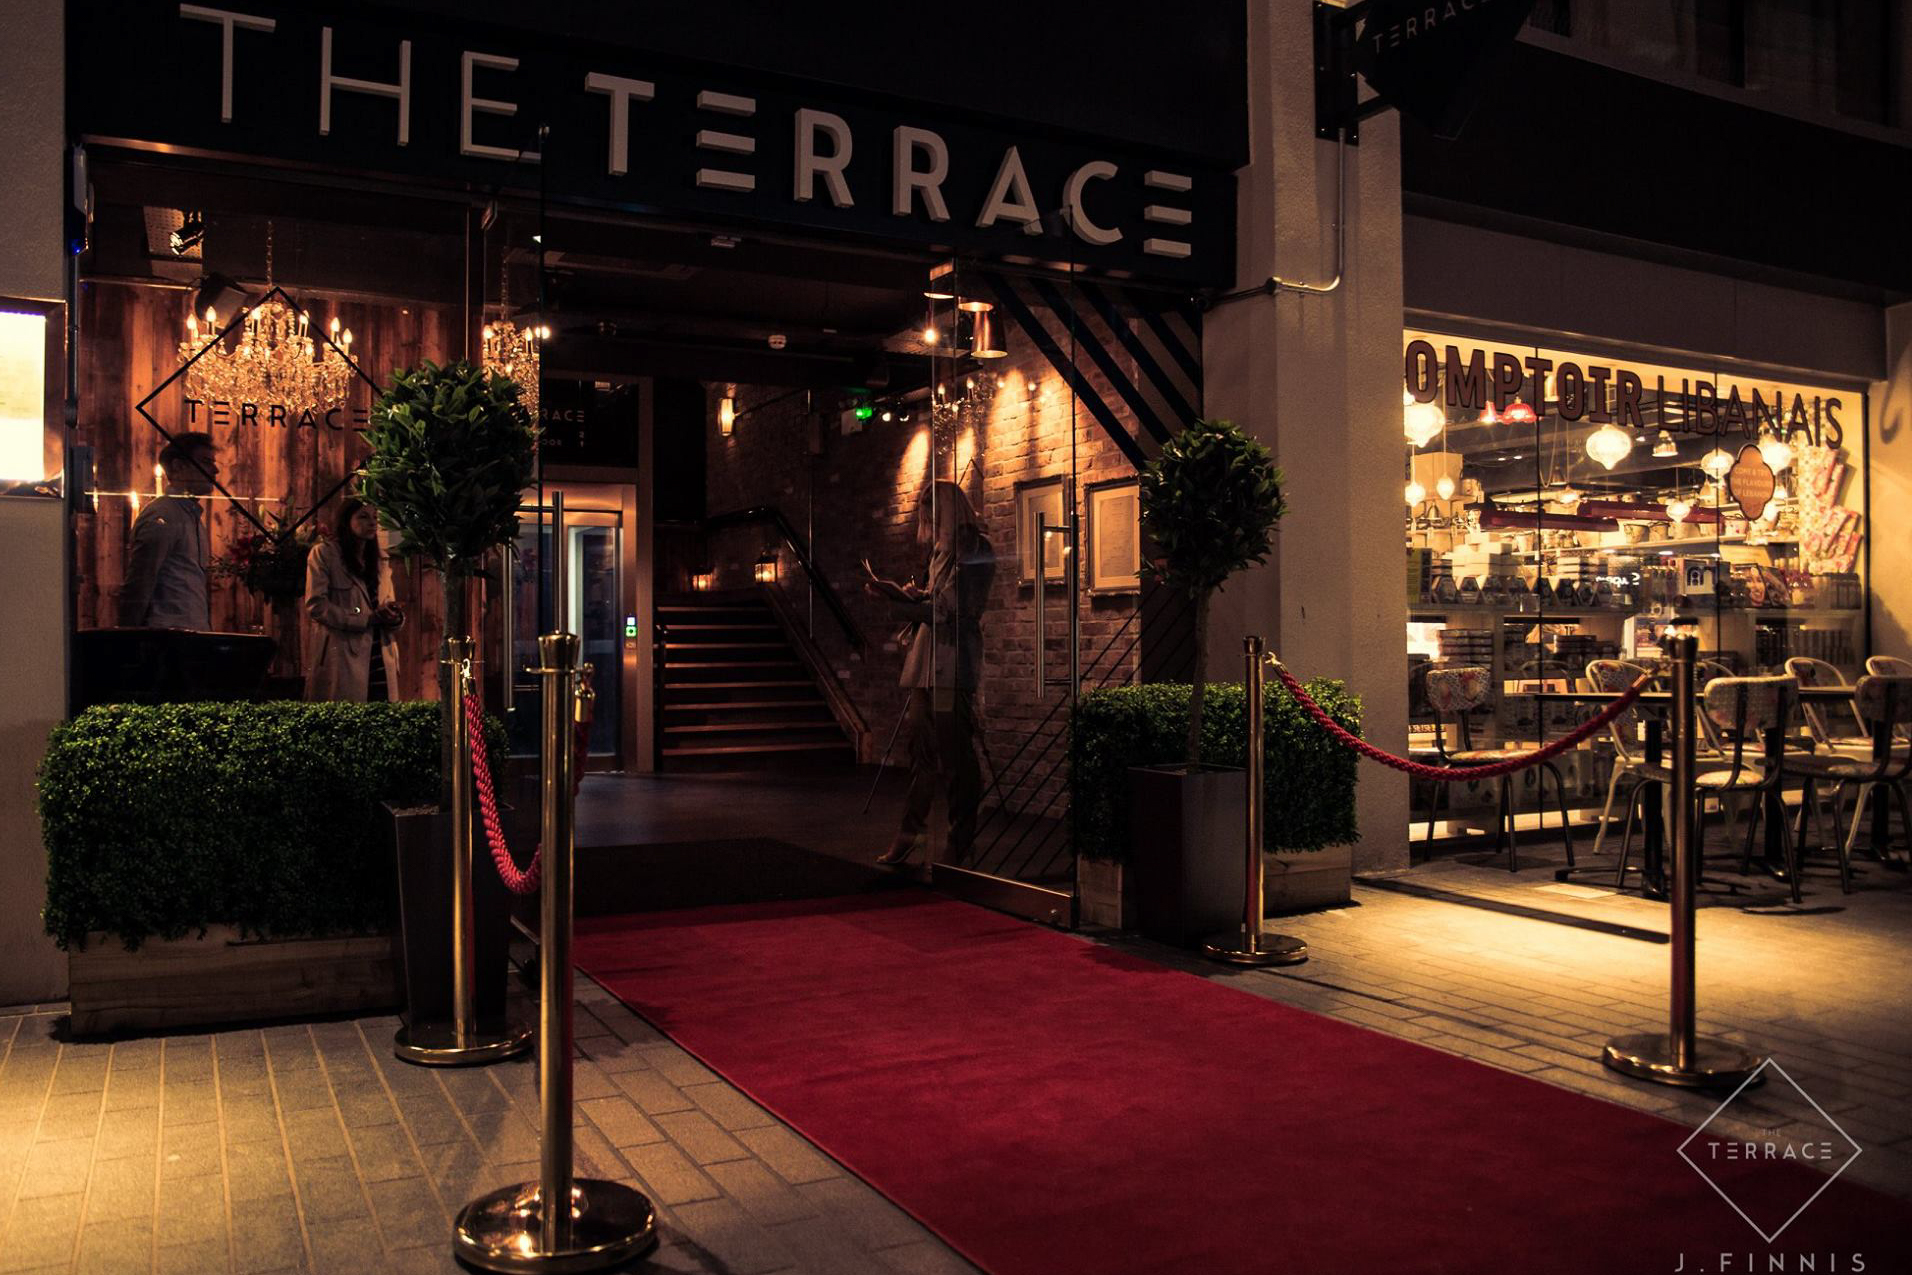 The Terrace classy restaurant and rooftop bar red carpet Exeter Restaurants